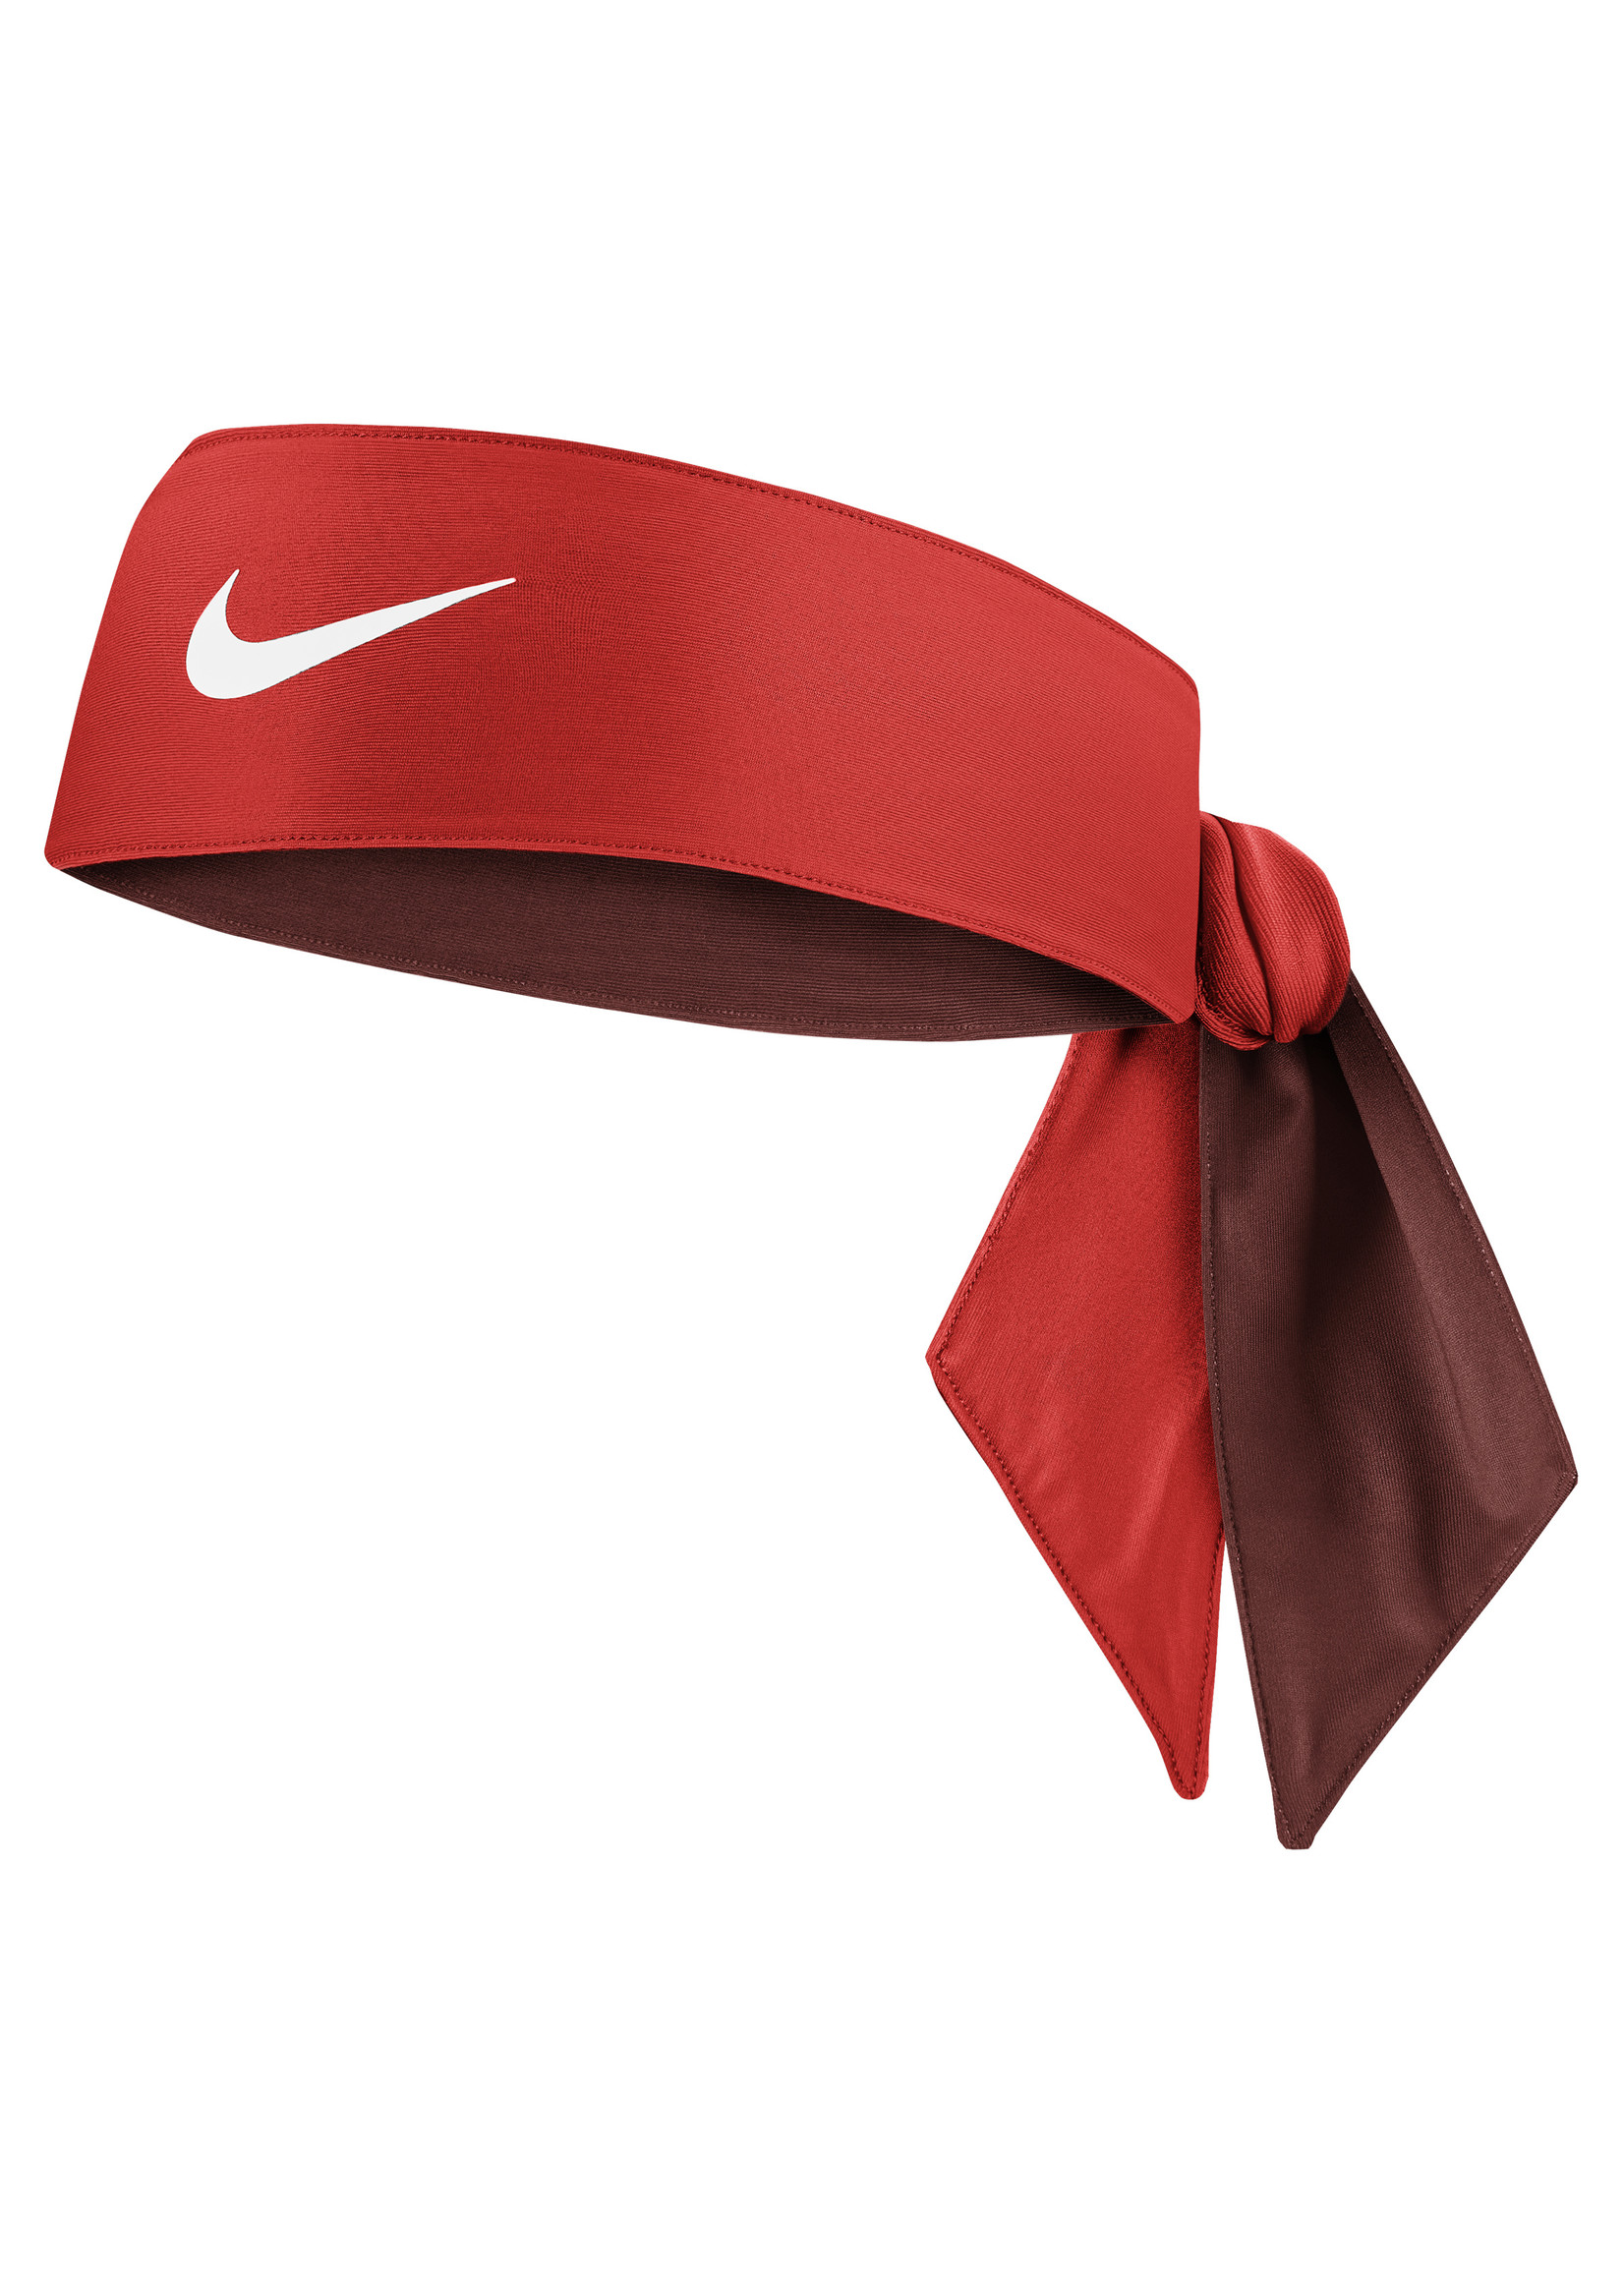 Nike Cooling Head Tie Red/White